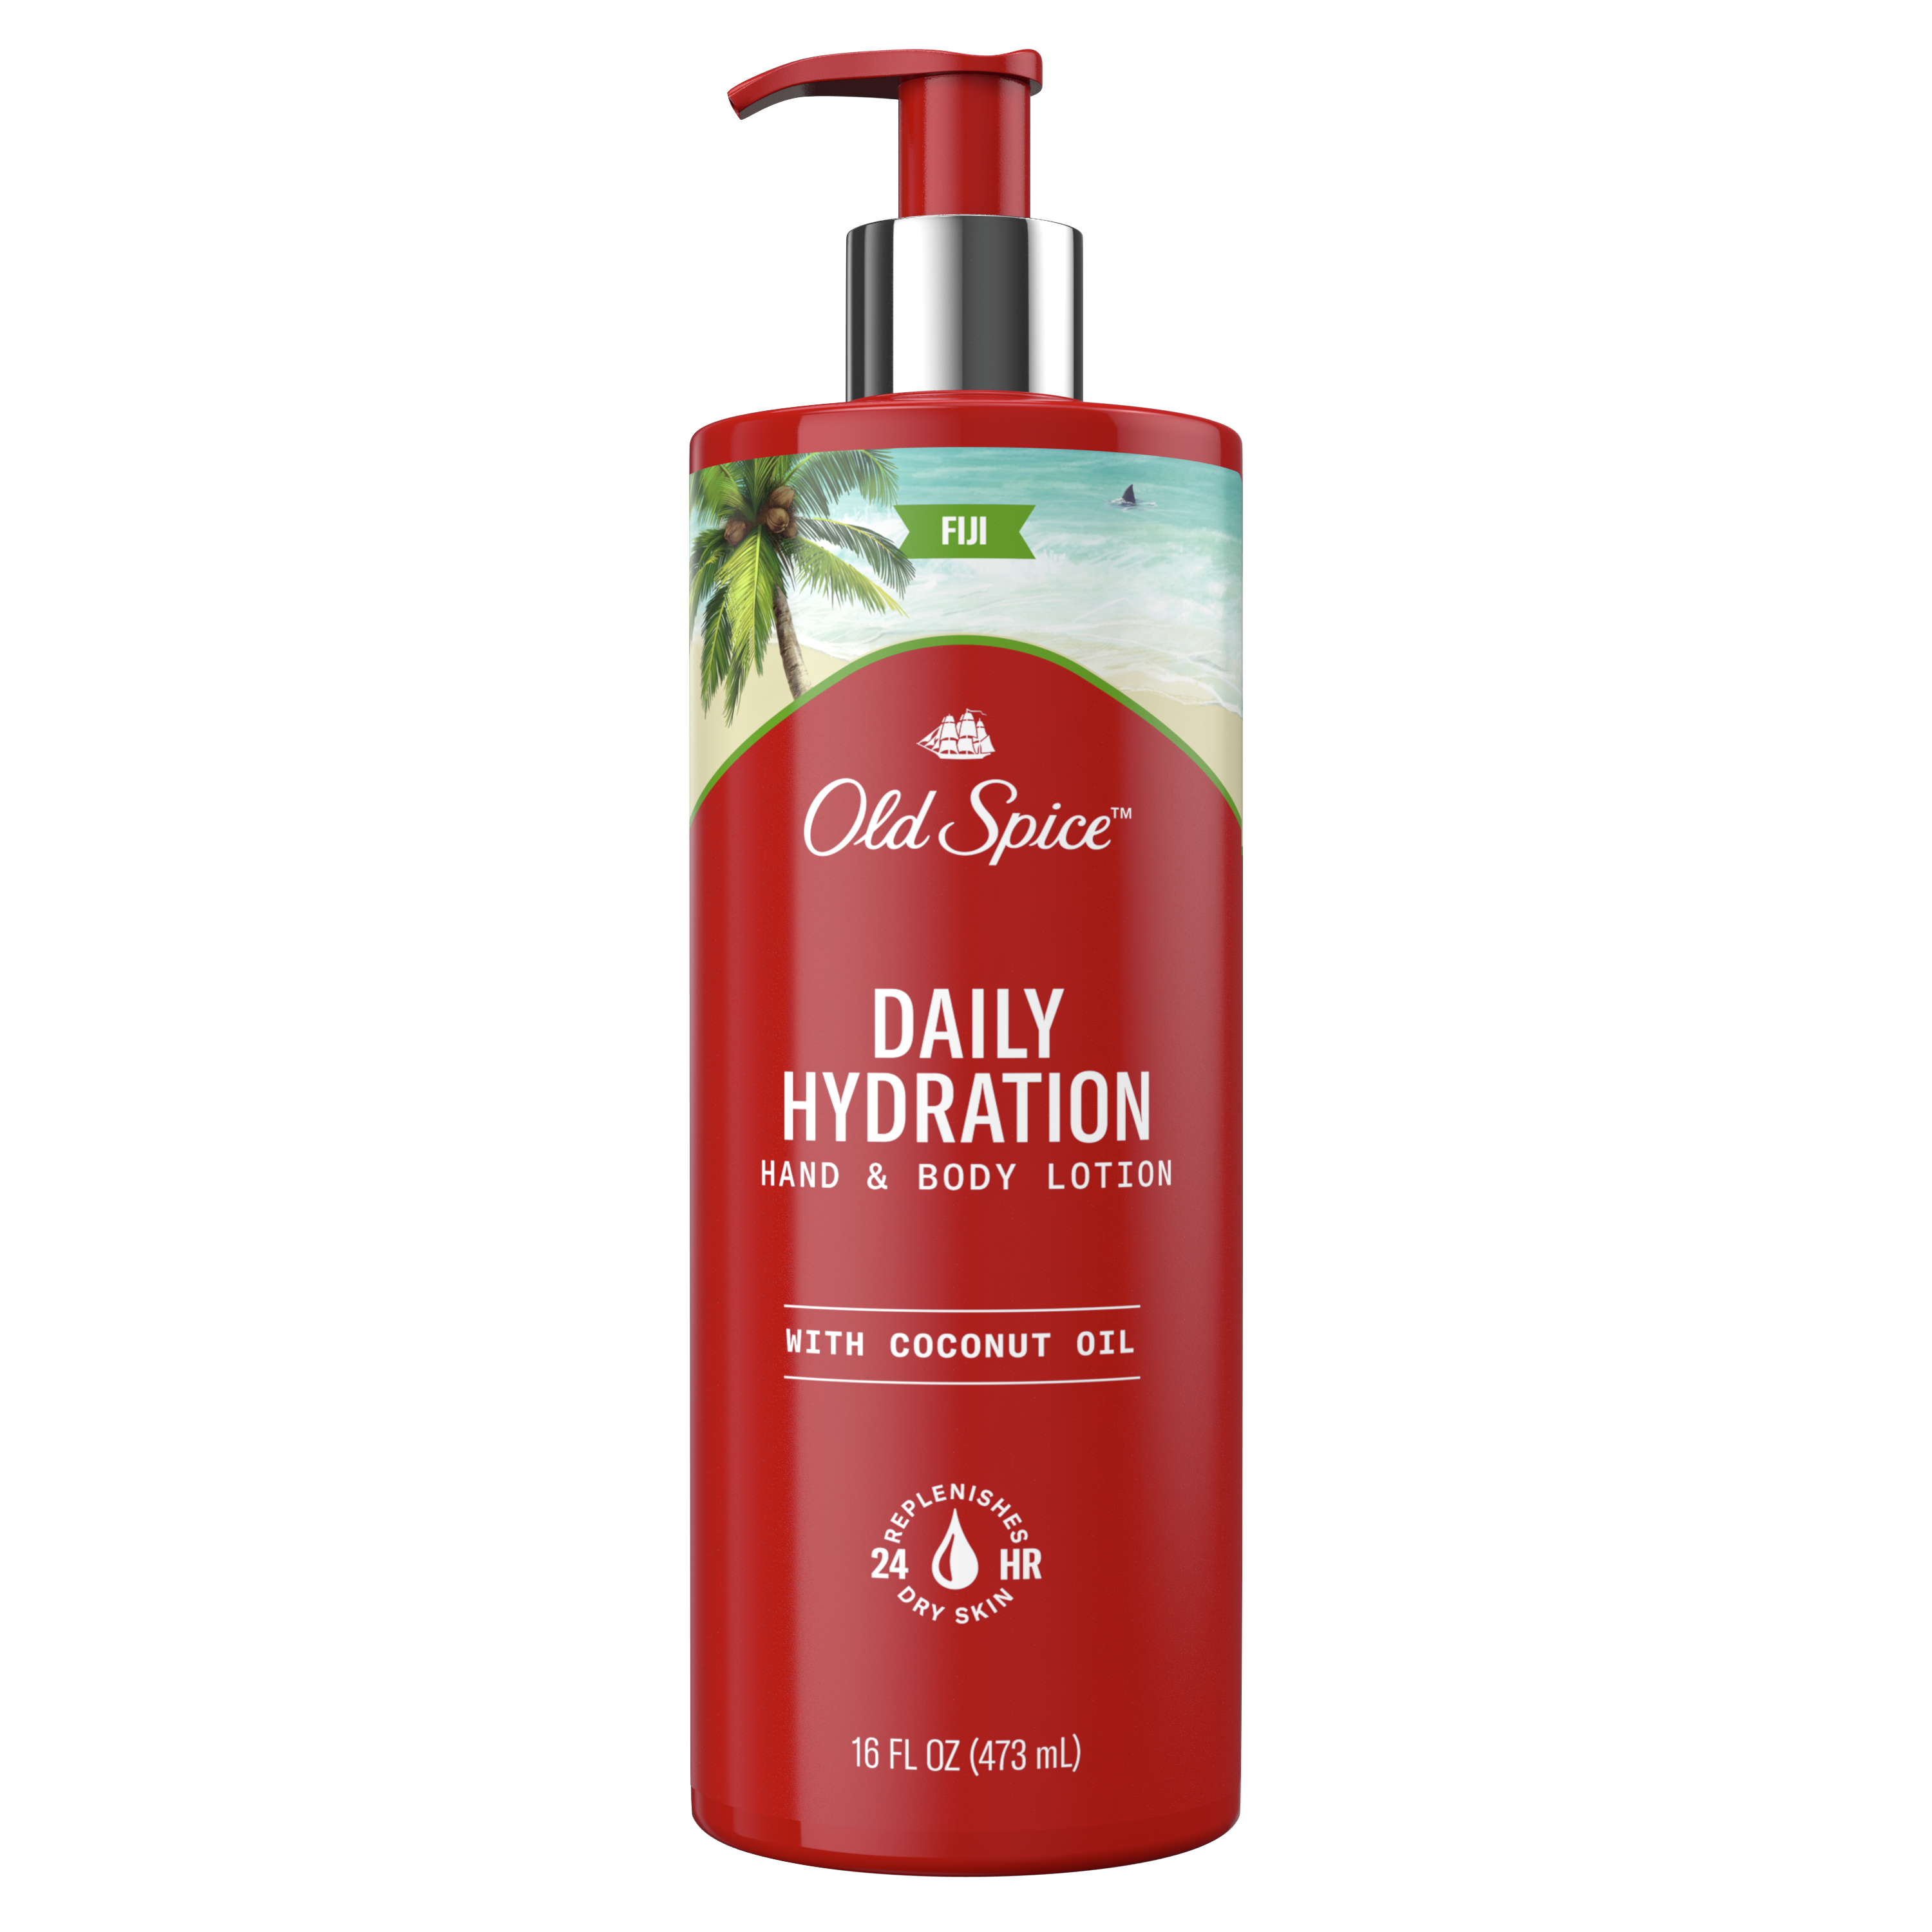 Hand & Body Lotion, Fiji with Coconut Oil